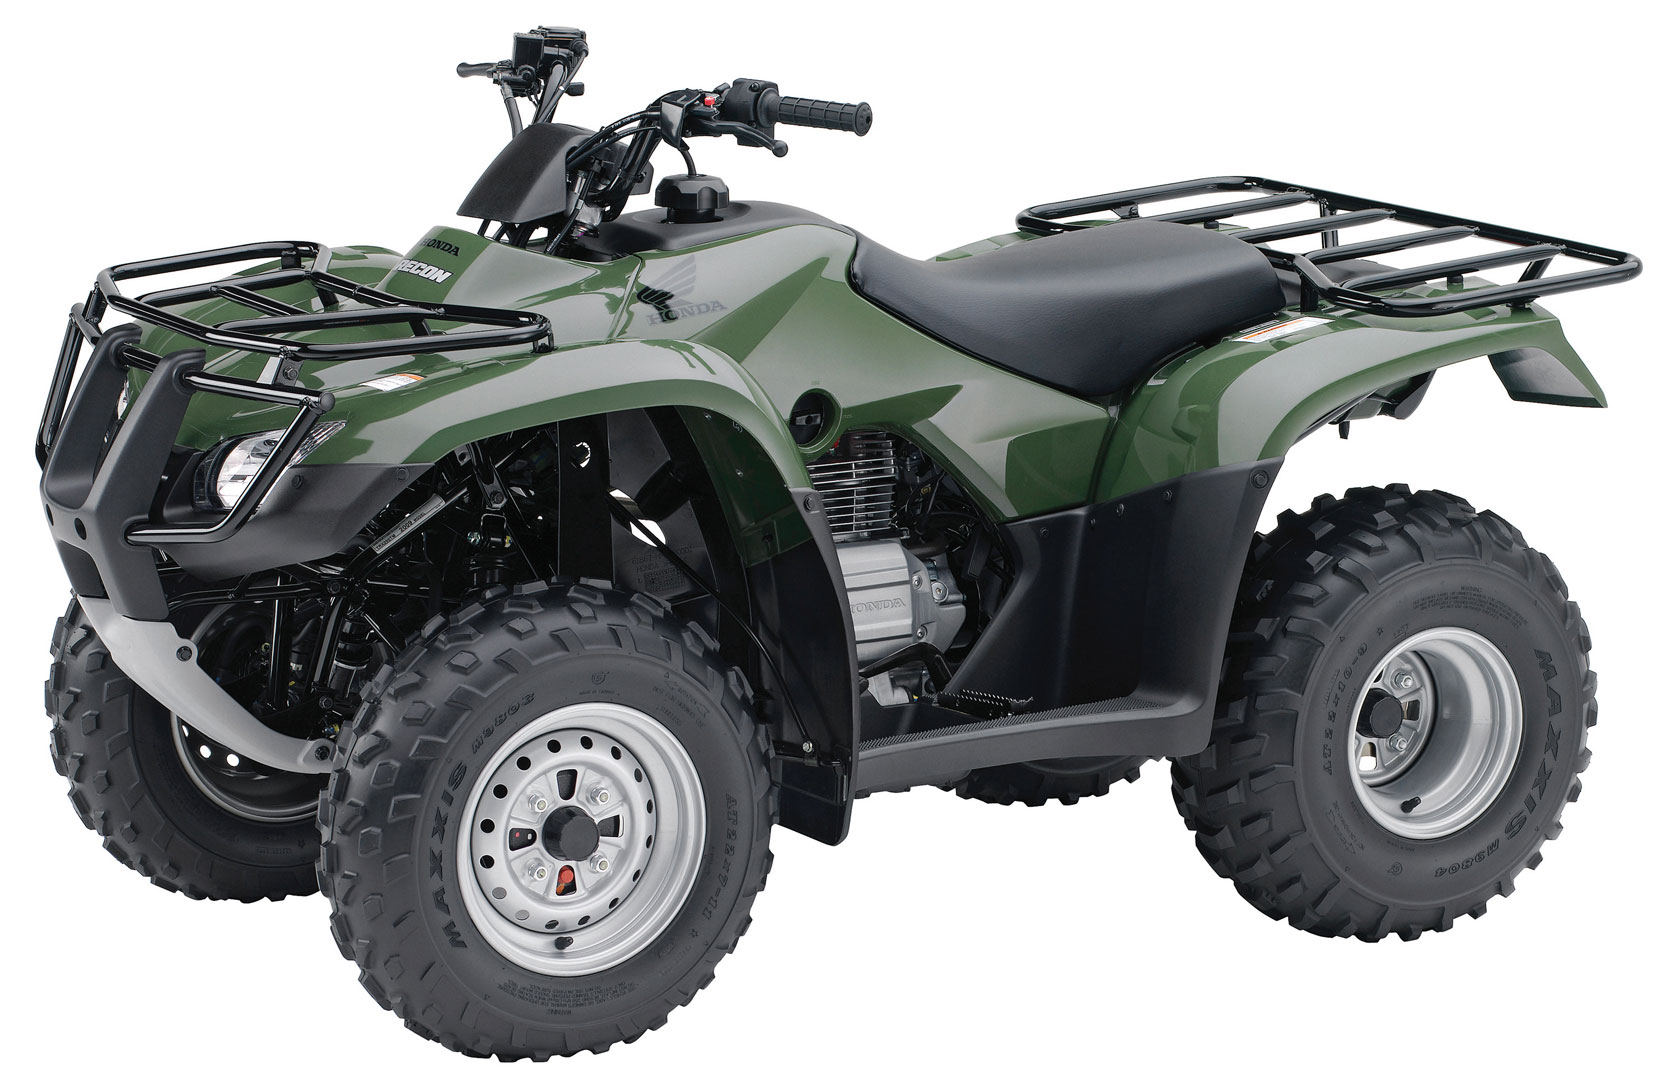 2011 Honda Fourtrax Recon Trx250tm